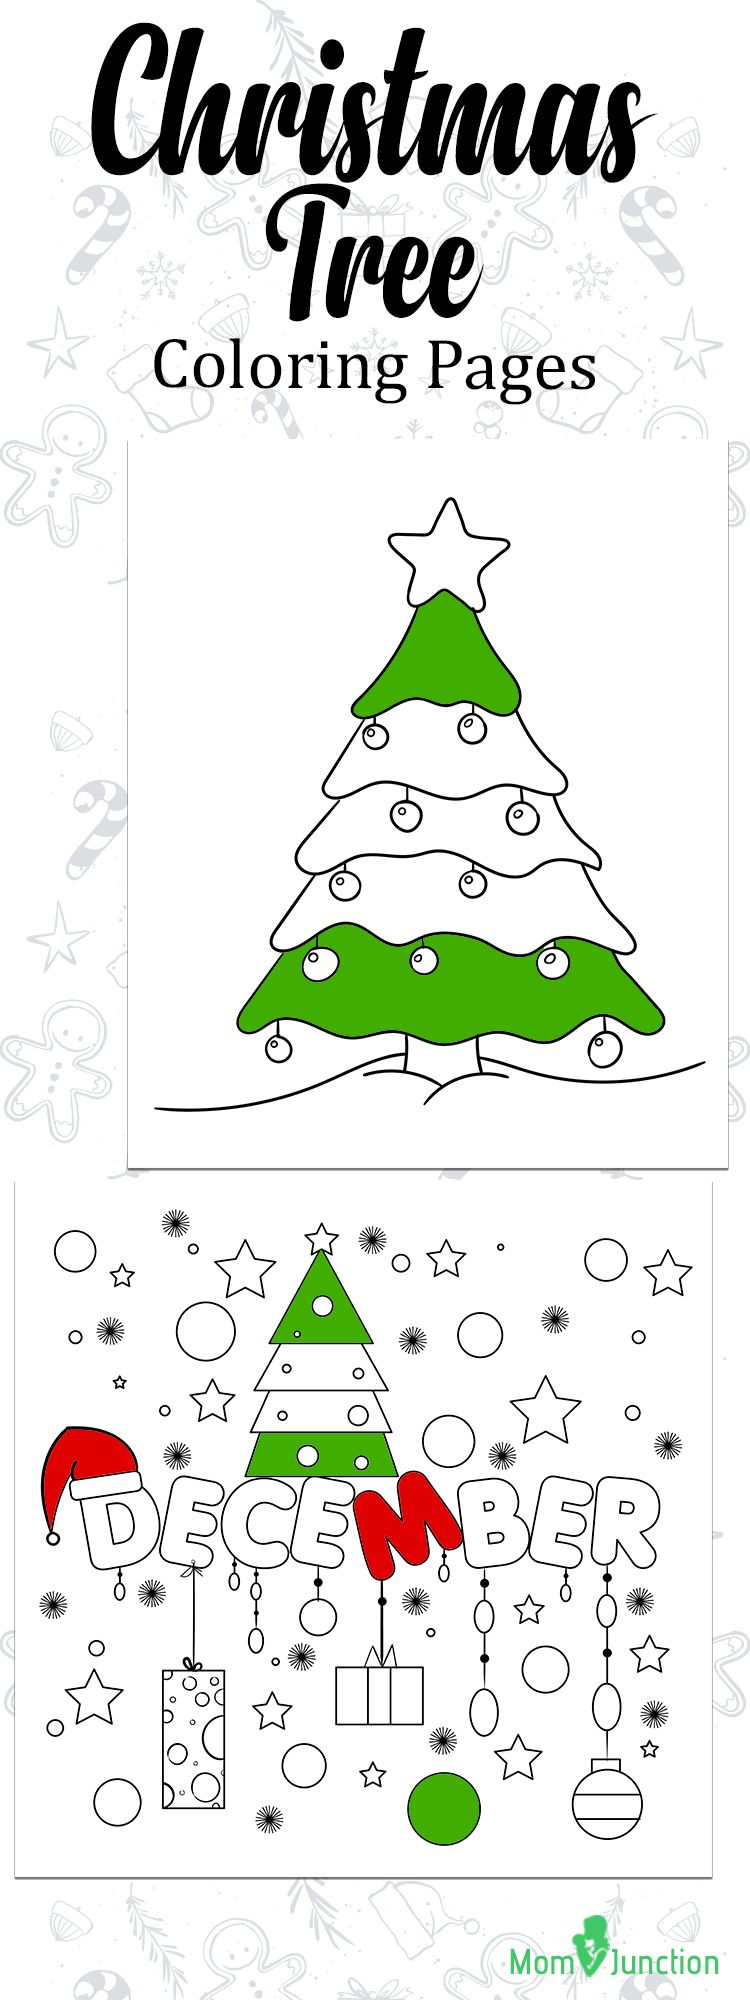 Top 35 Free Printable Christmas Tree Coloring Pages Online ...